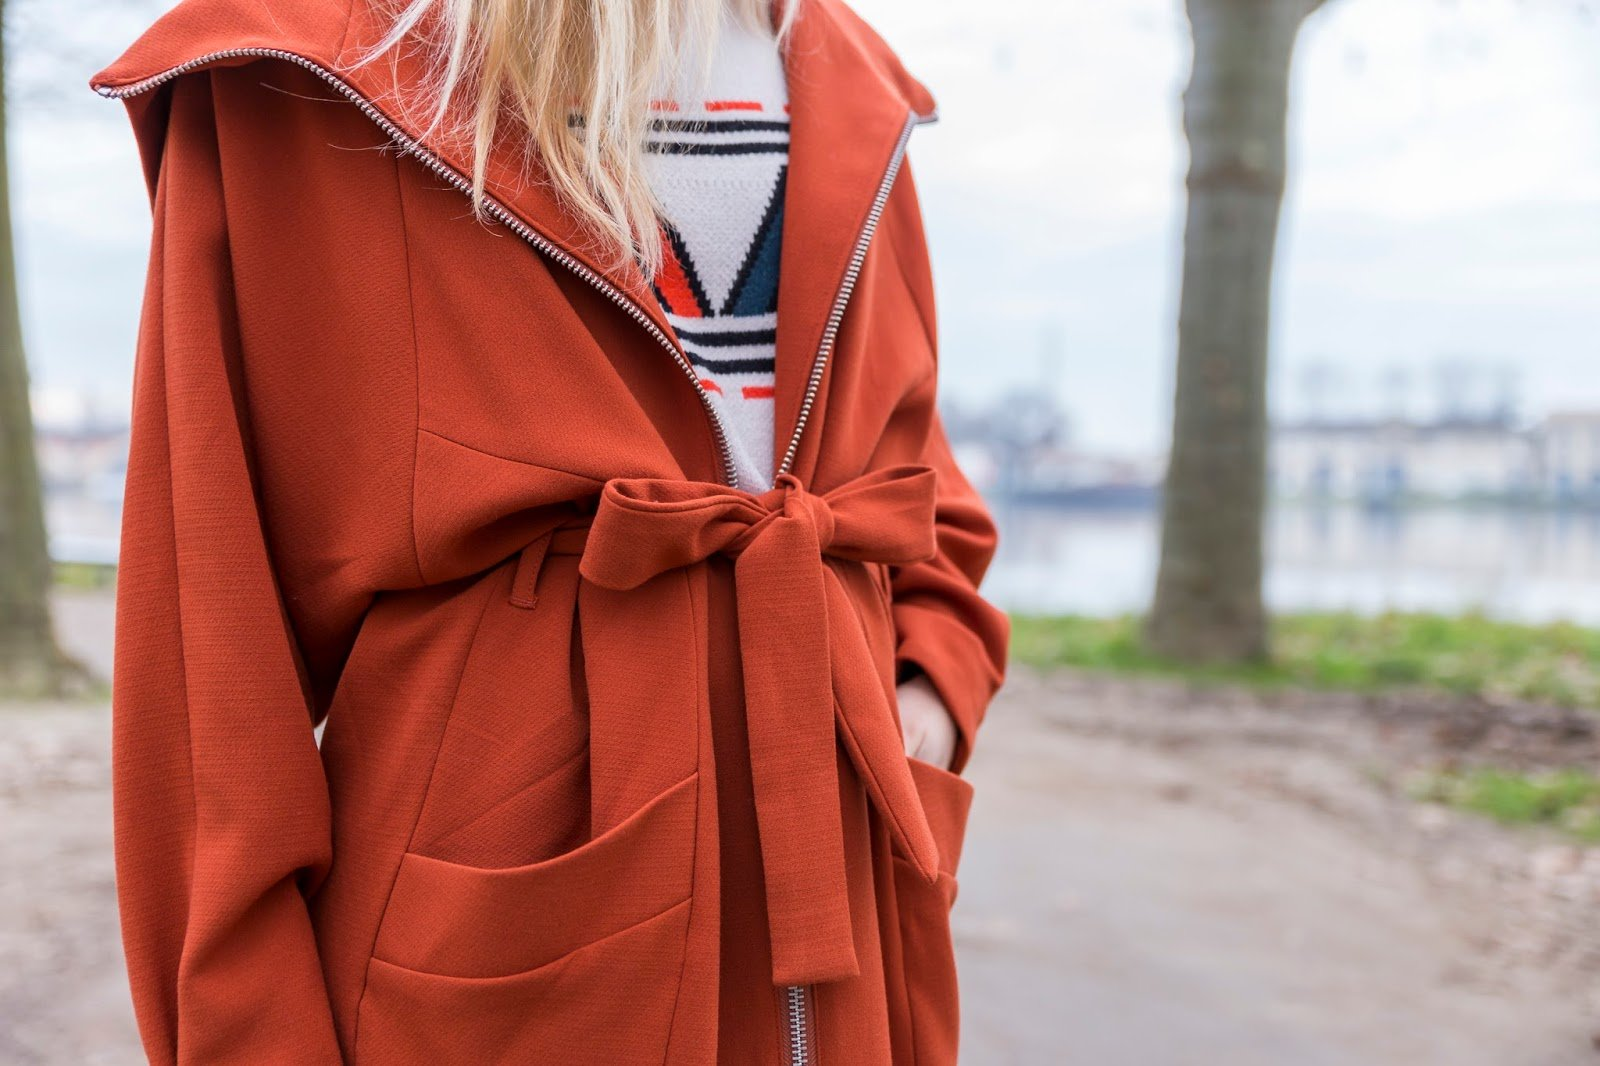 manteau orange ceinturé